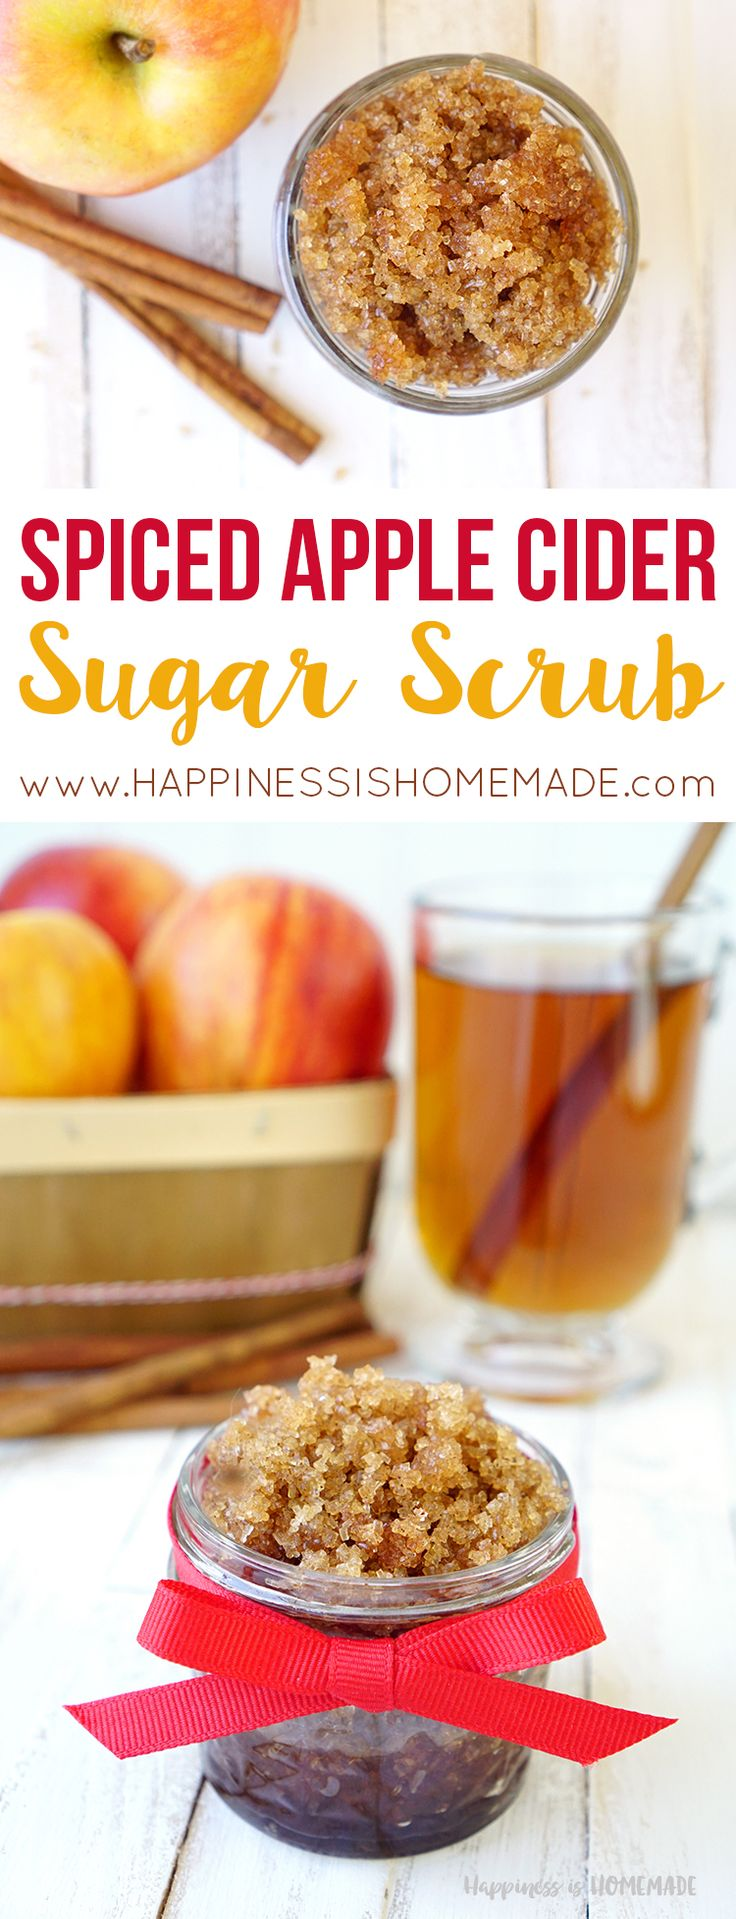 best 25+ brown sugar scrub ideas on pinterest | exfoliating body